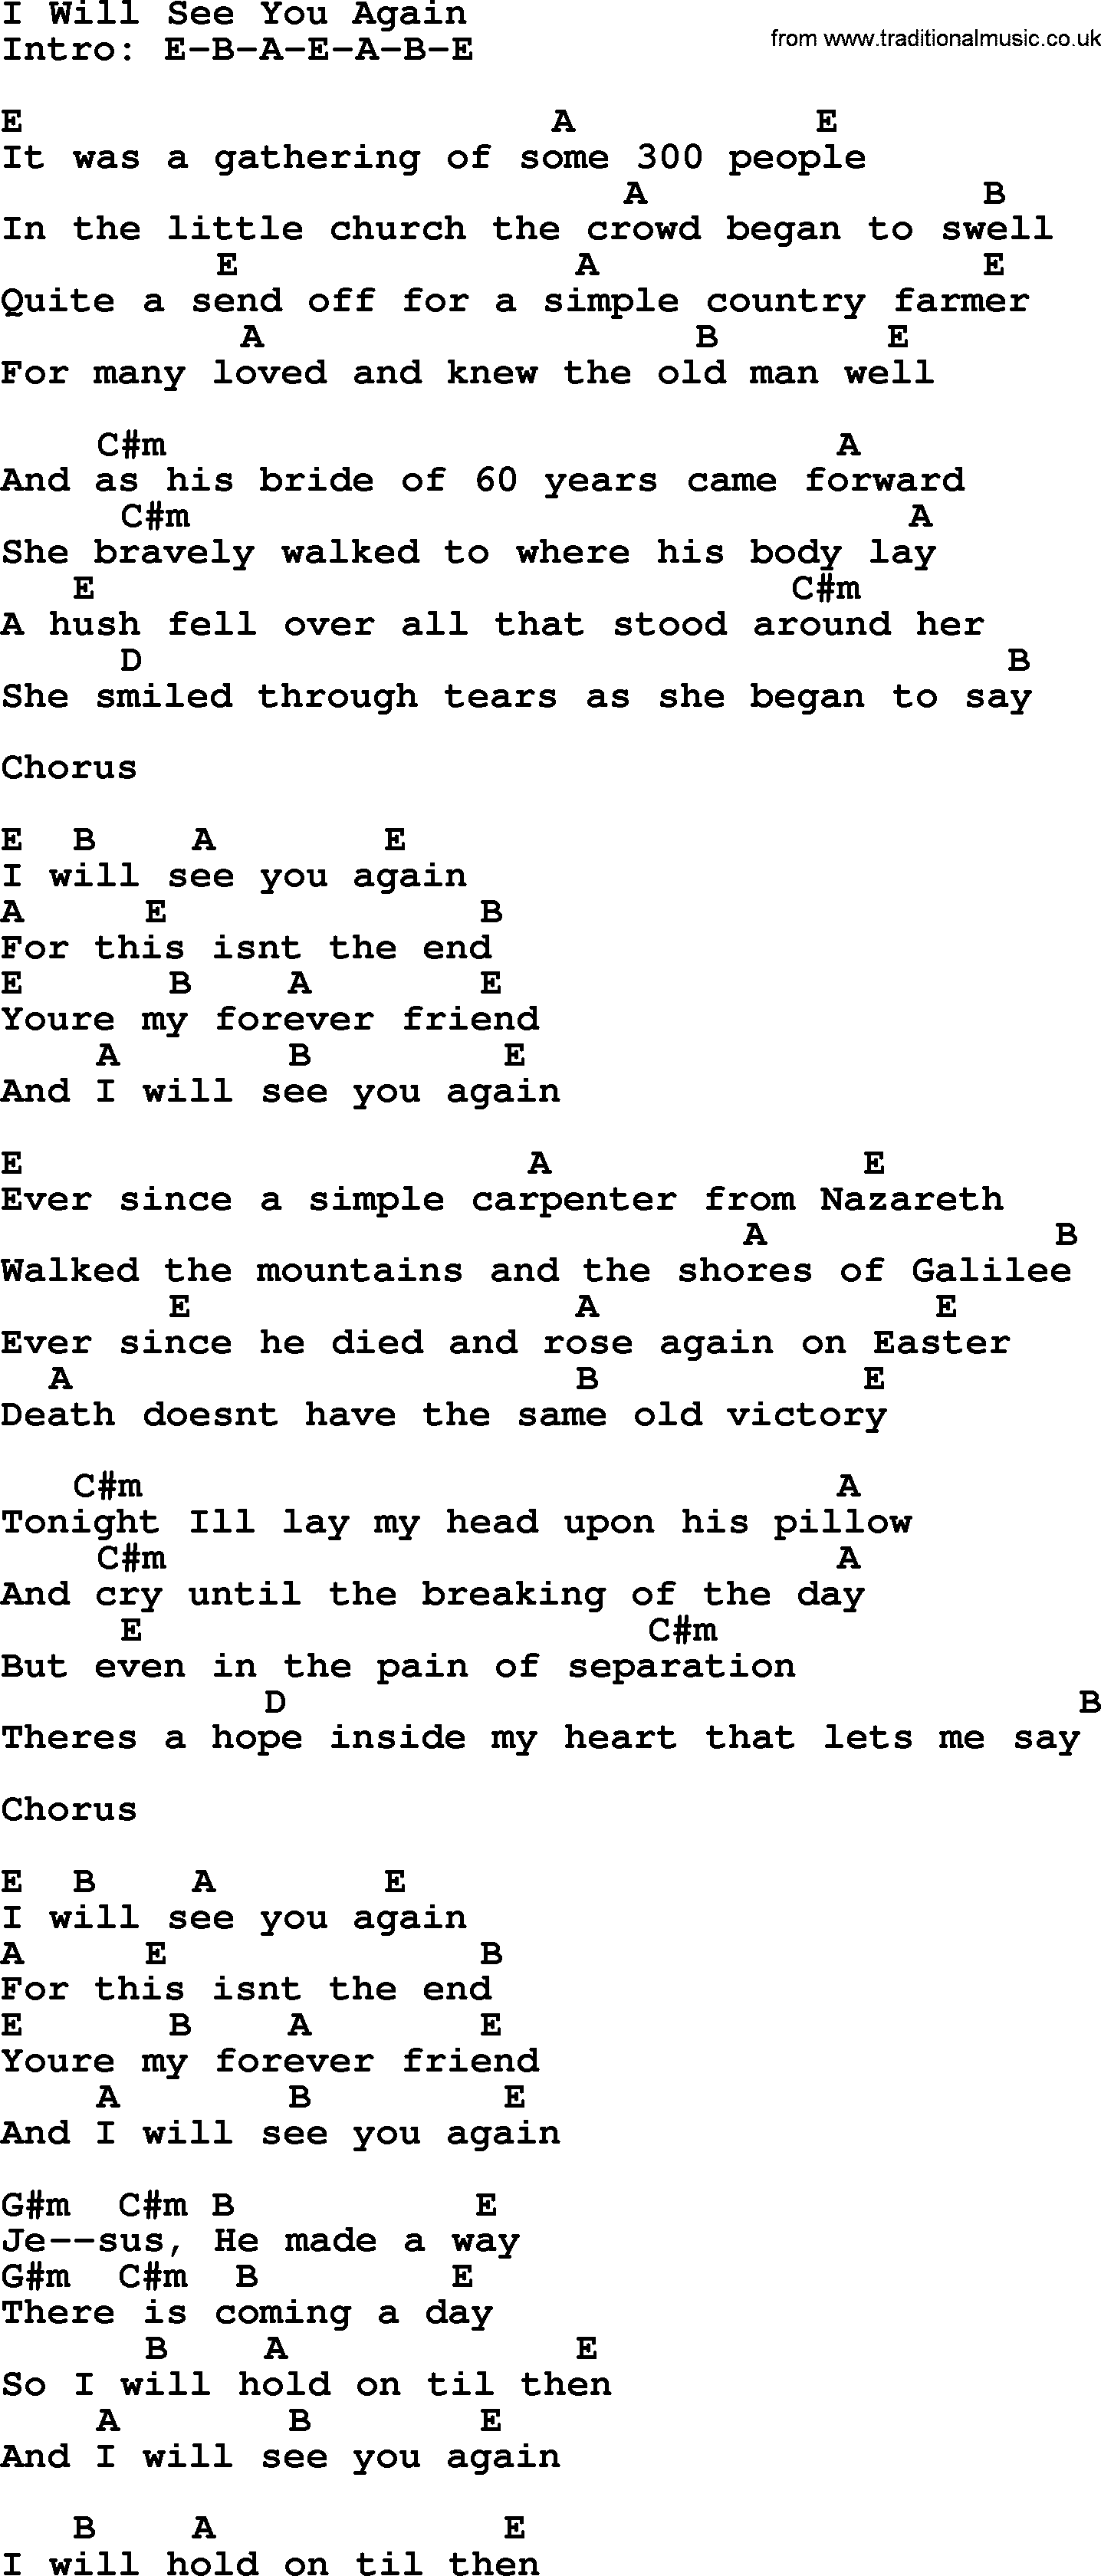 I Will See You Again - Bluegrass lyrics with chords